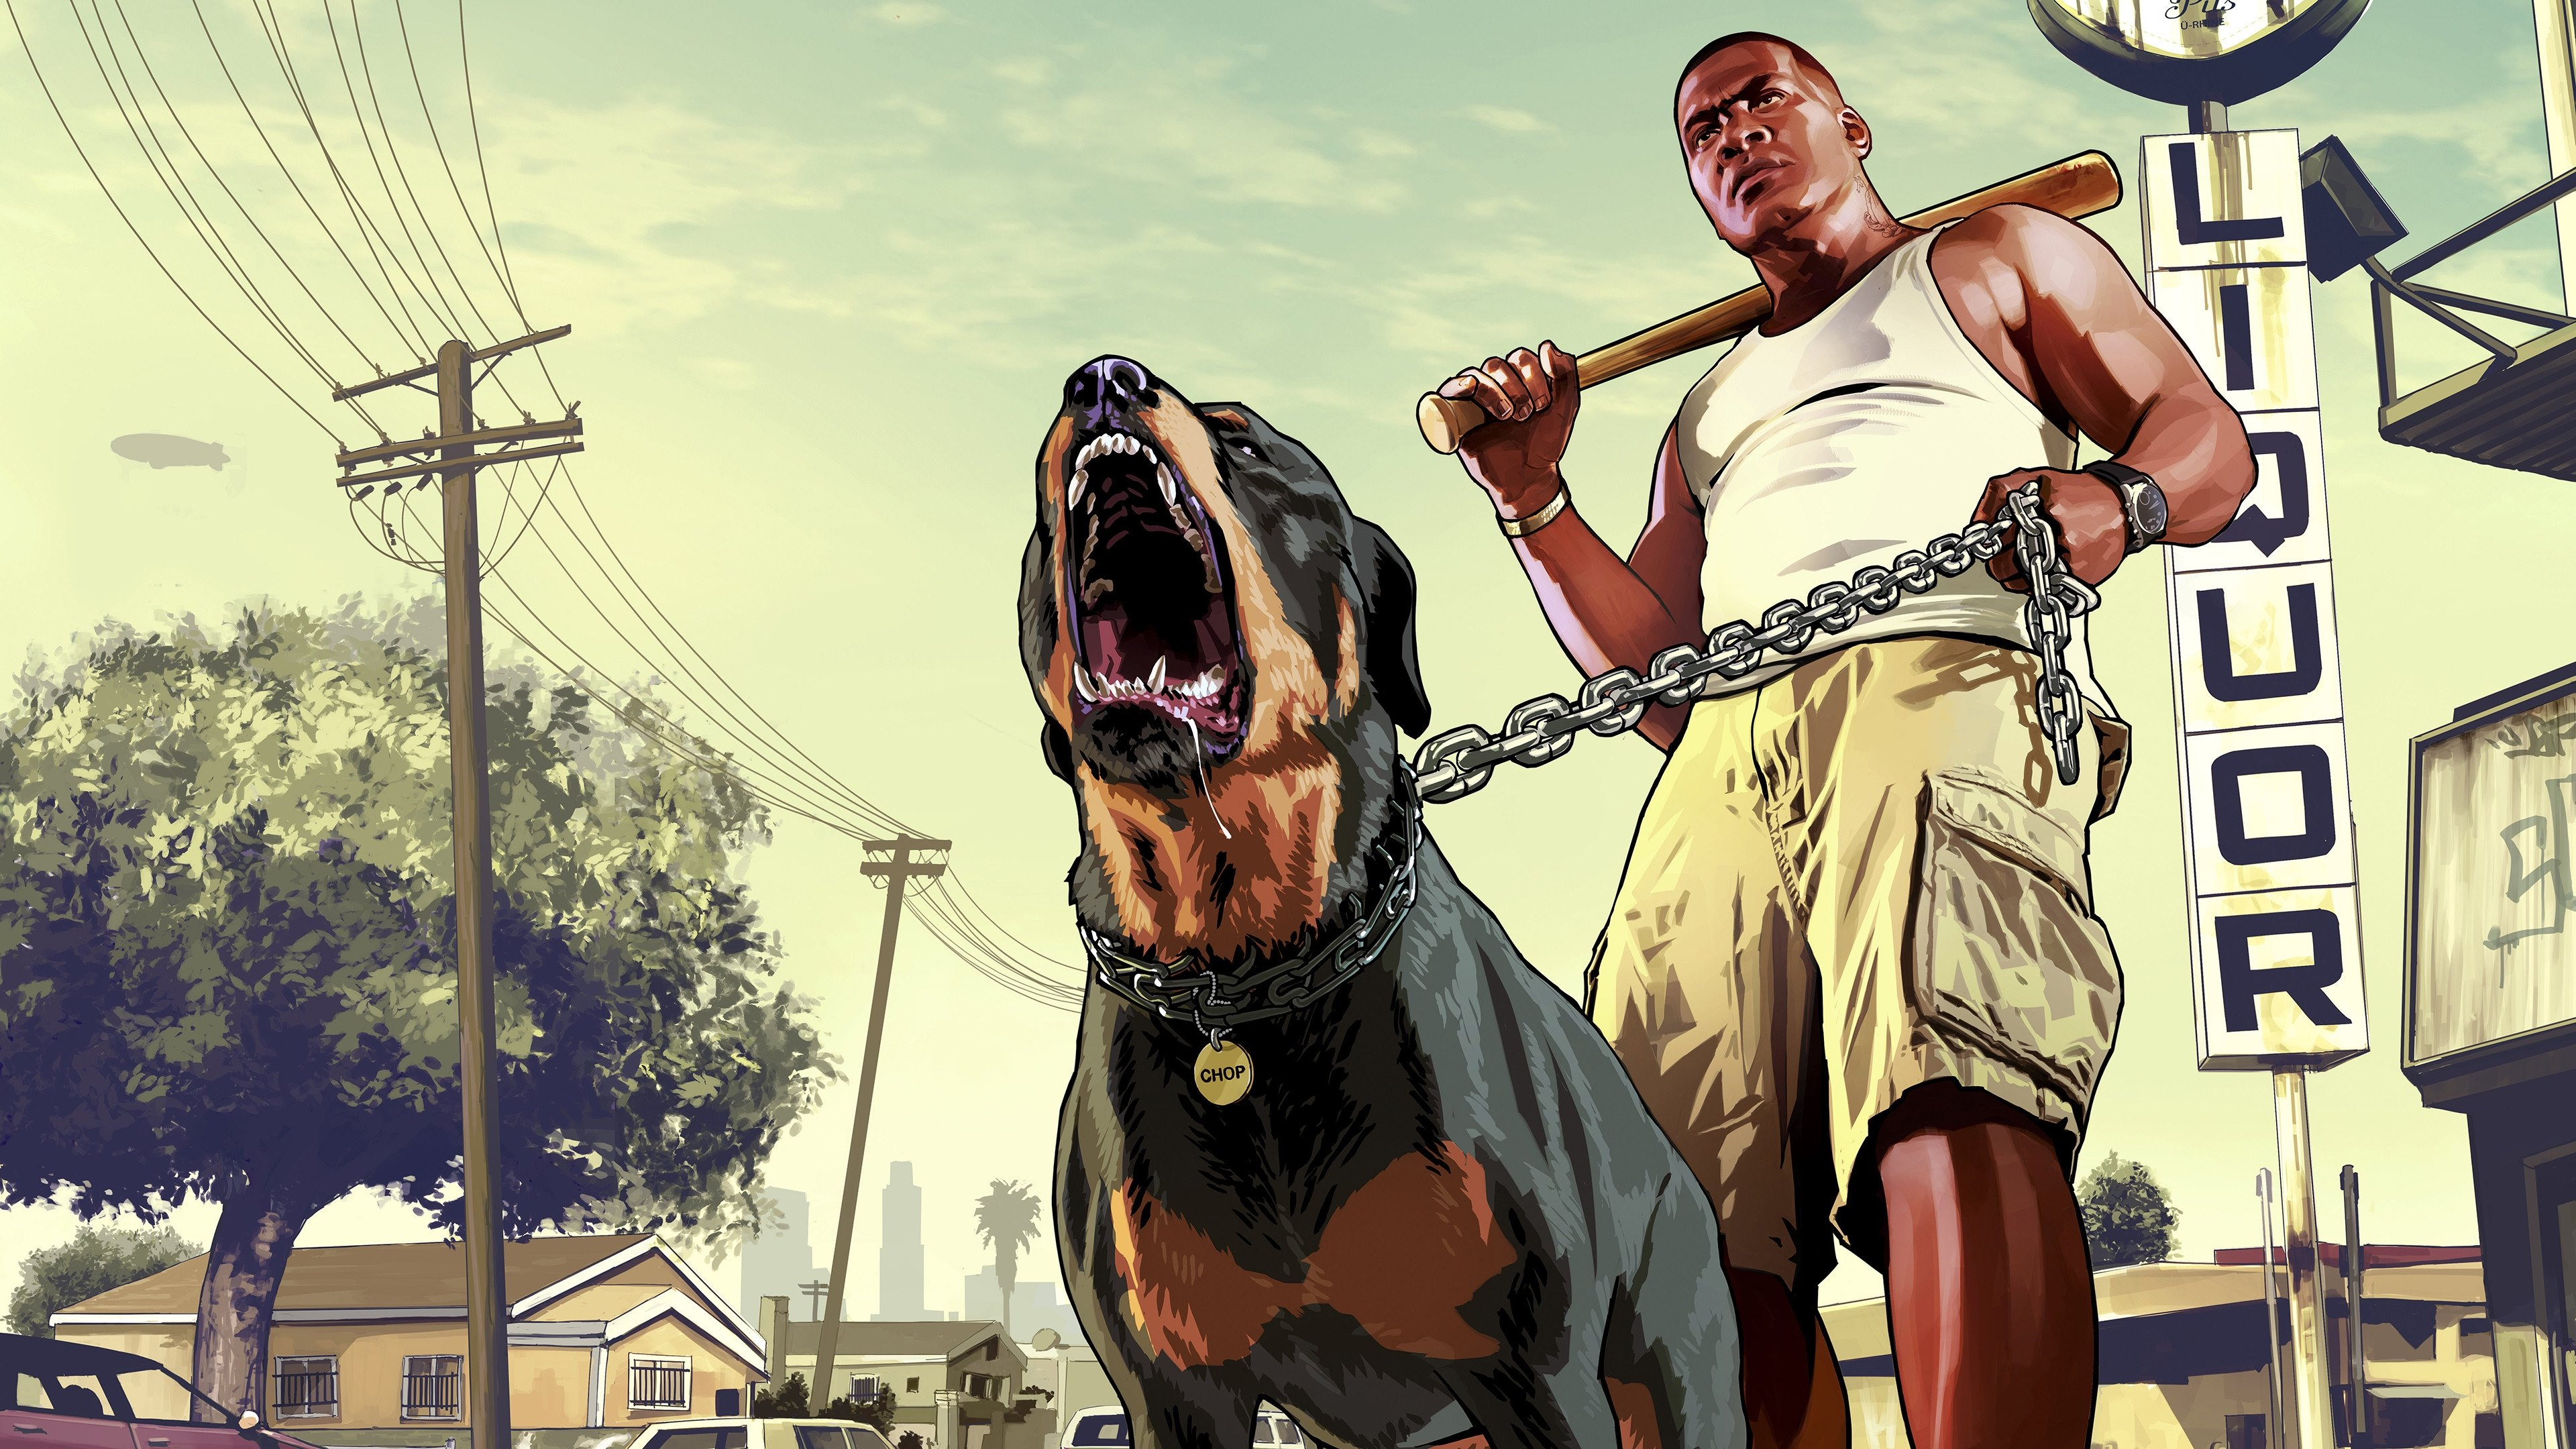 Download image gta5 pc android iphone and ipad wallpapers and - High Definition Hd 1080p 1920x1080 Fits On 1600x900 1366x768 1280x720 Samsung Galaxy Tab Ipad